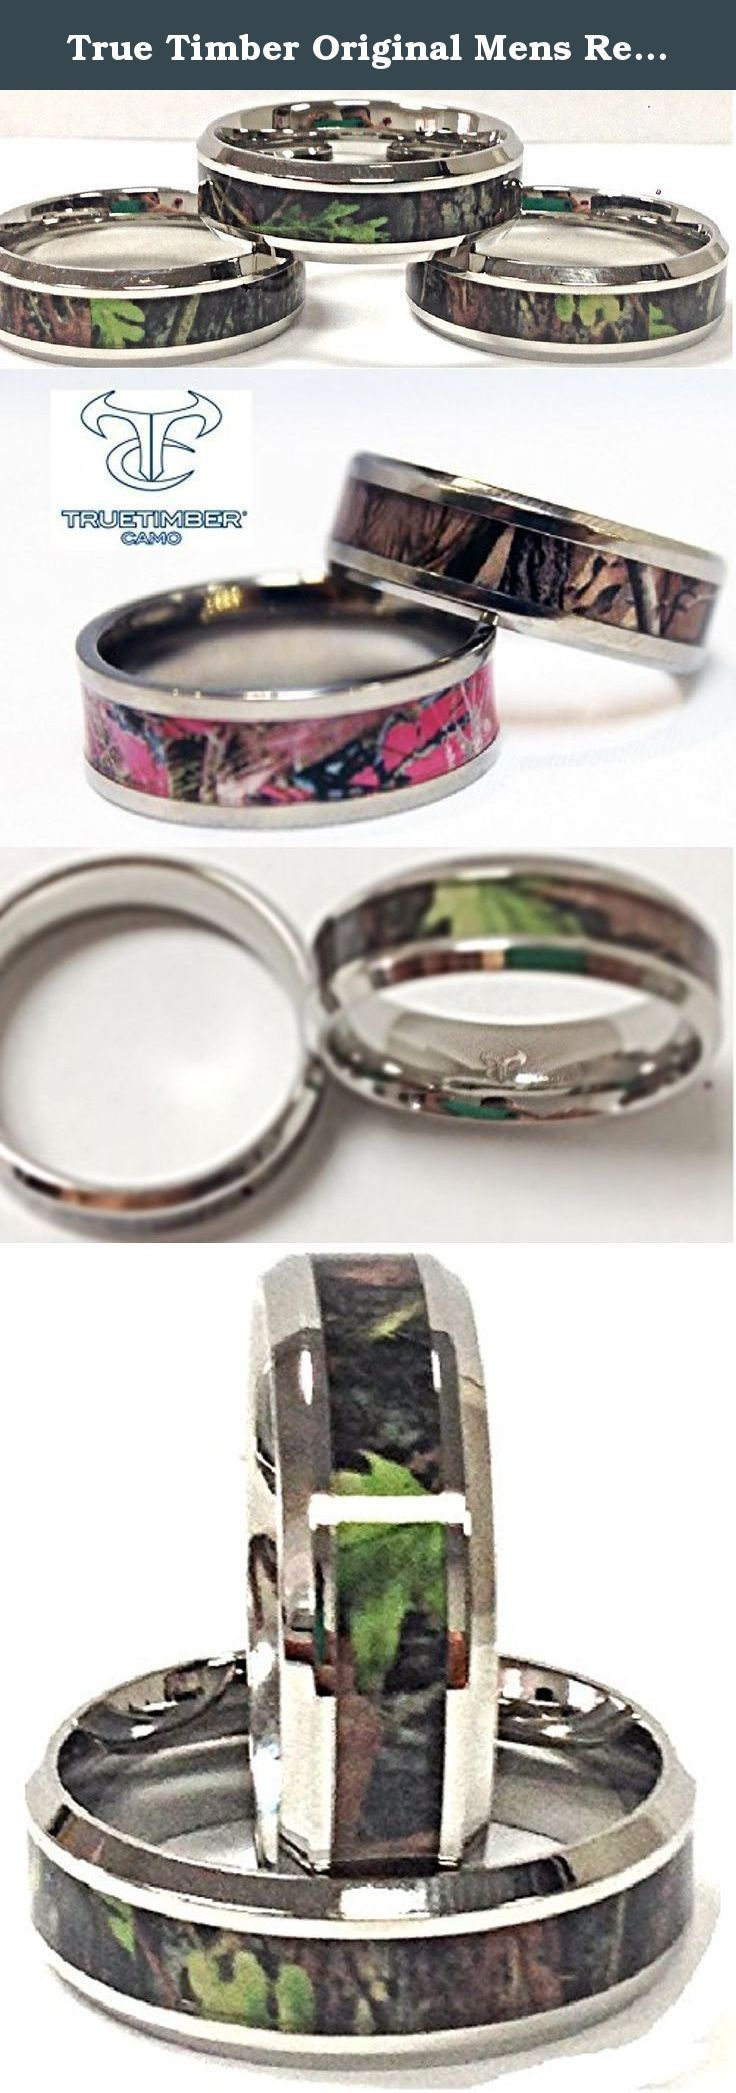 True Timber Original Mens Real Green Camo Ring Size 14. True Timber® Original Camouflage Band inlay was designed from real images of trees, branches and leaves. A duo that appreciate everything together in the outdoors, celebrate your commitment with this clever and meaningful ring. Fashioned in sleek and durable Stainless Steel, ladies band feature a colorful True Timber® camouflage inlay. Beveled edges and a buffed luster complete this handsome style, while a rounded shank provides a...